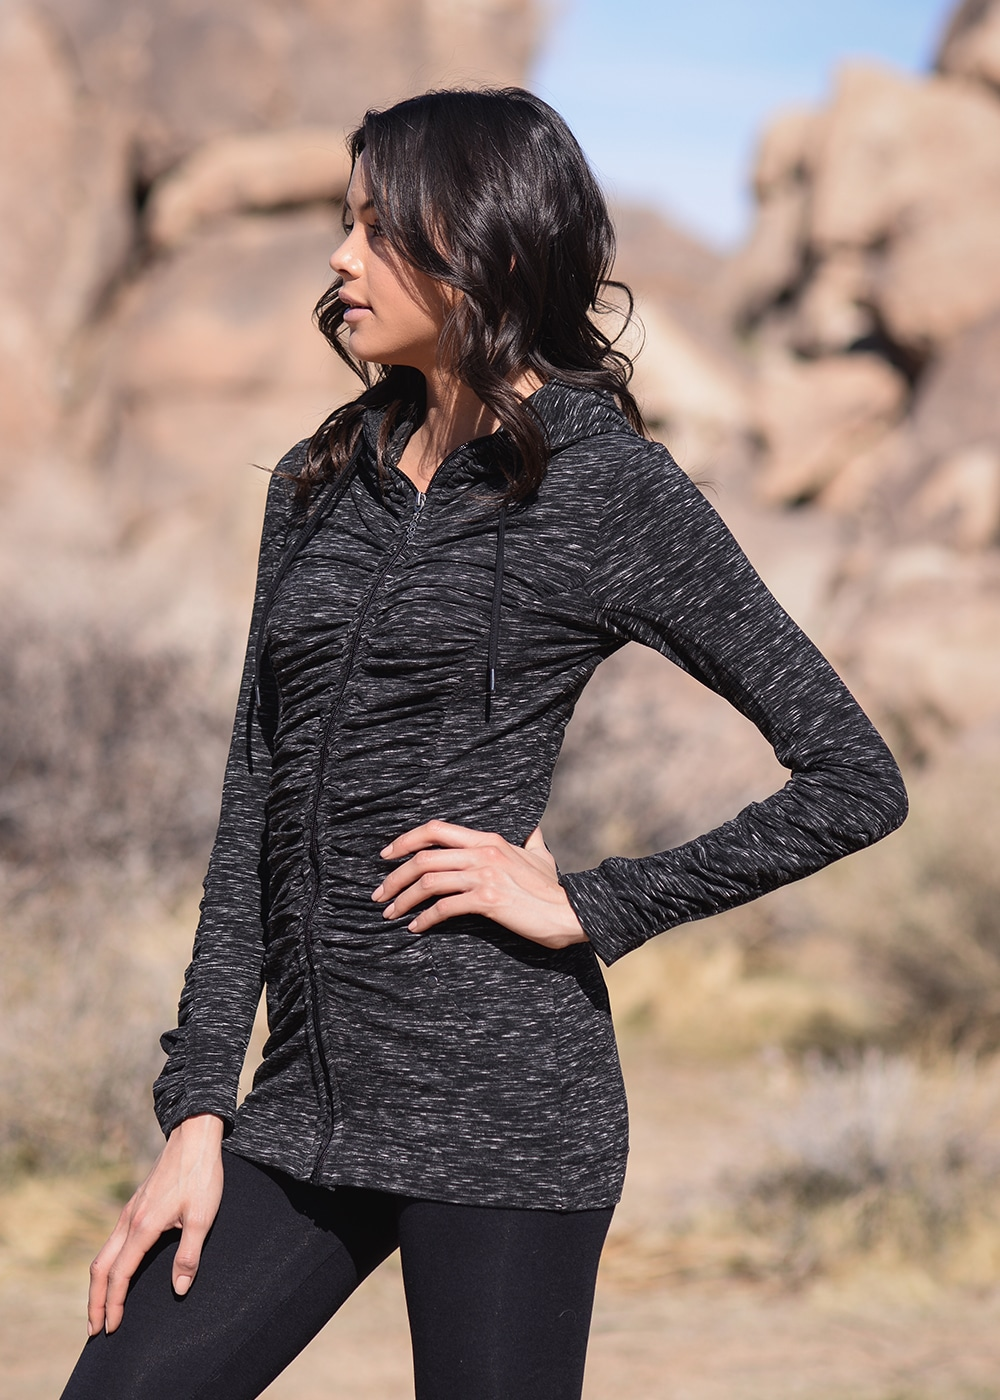 Bamboo and Organic Cotton Thrive Tunic in Black Fleck by Nomads Hemp Wear Side View